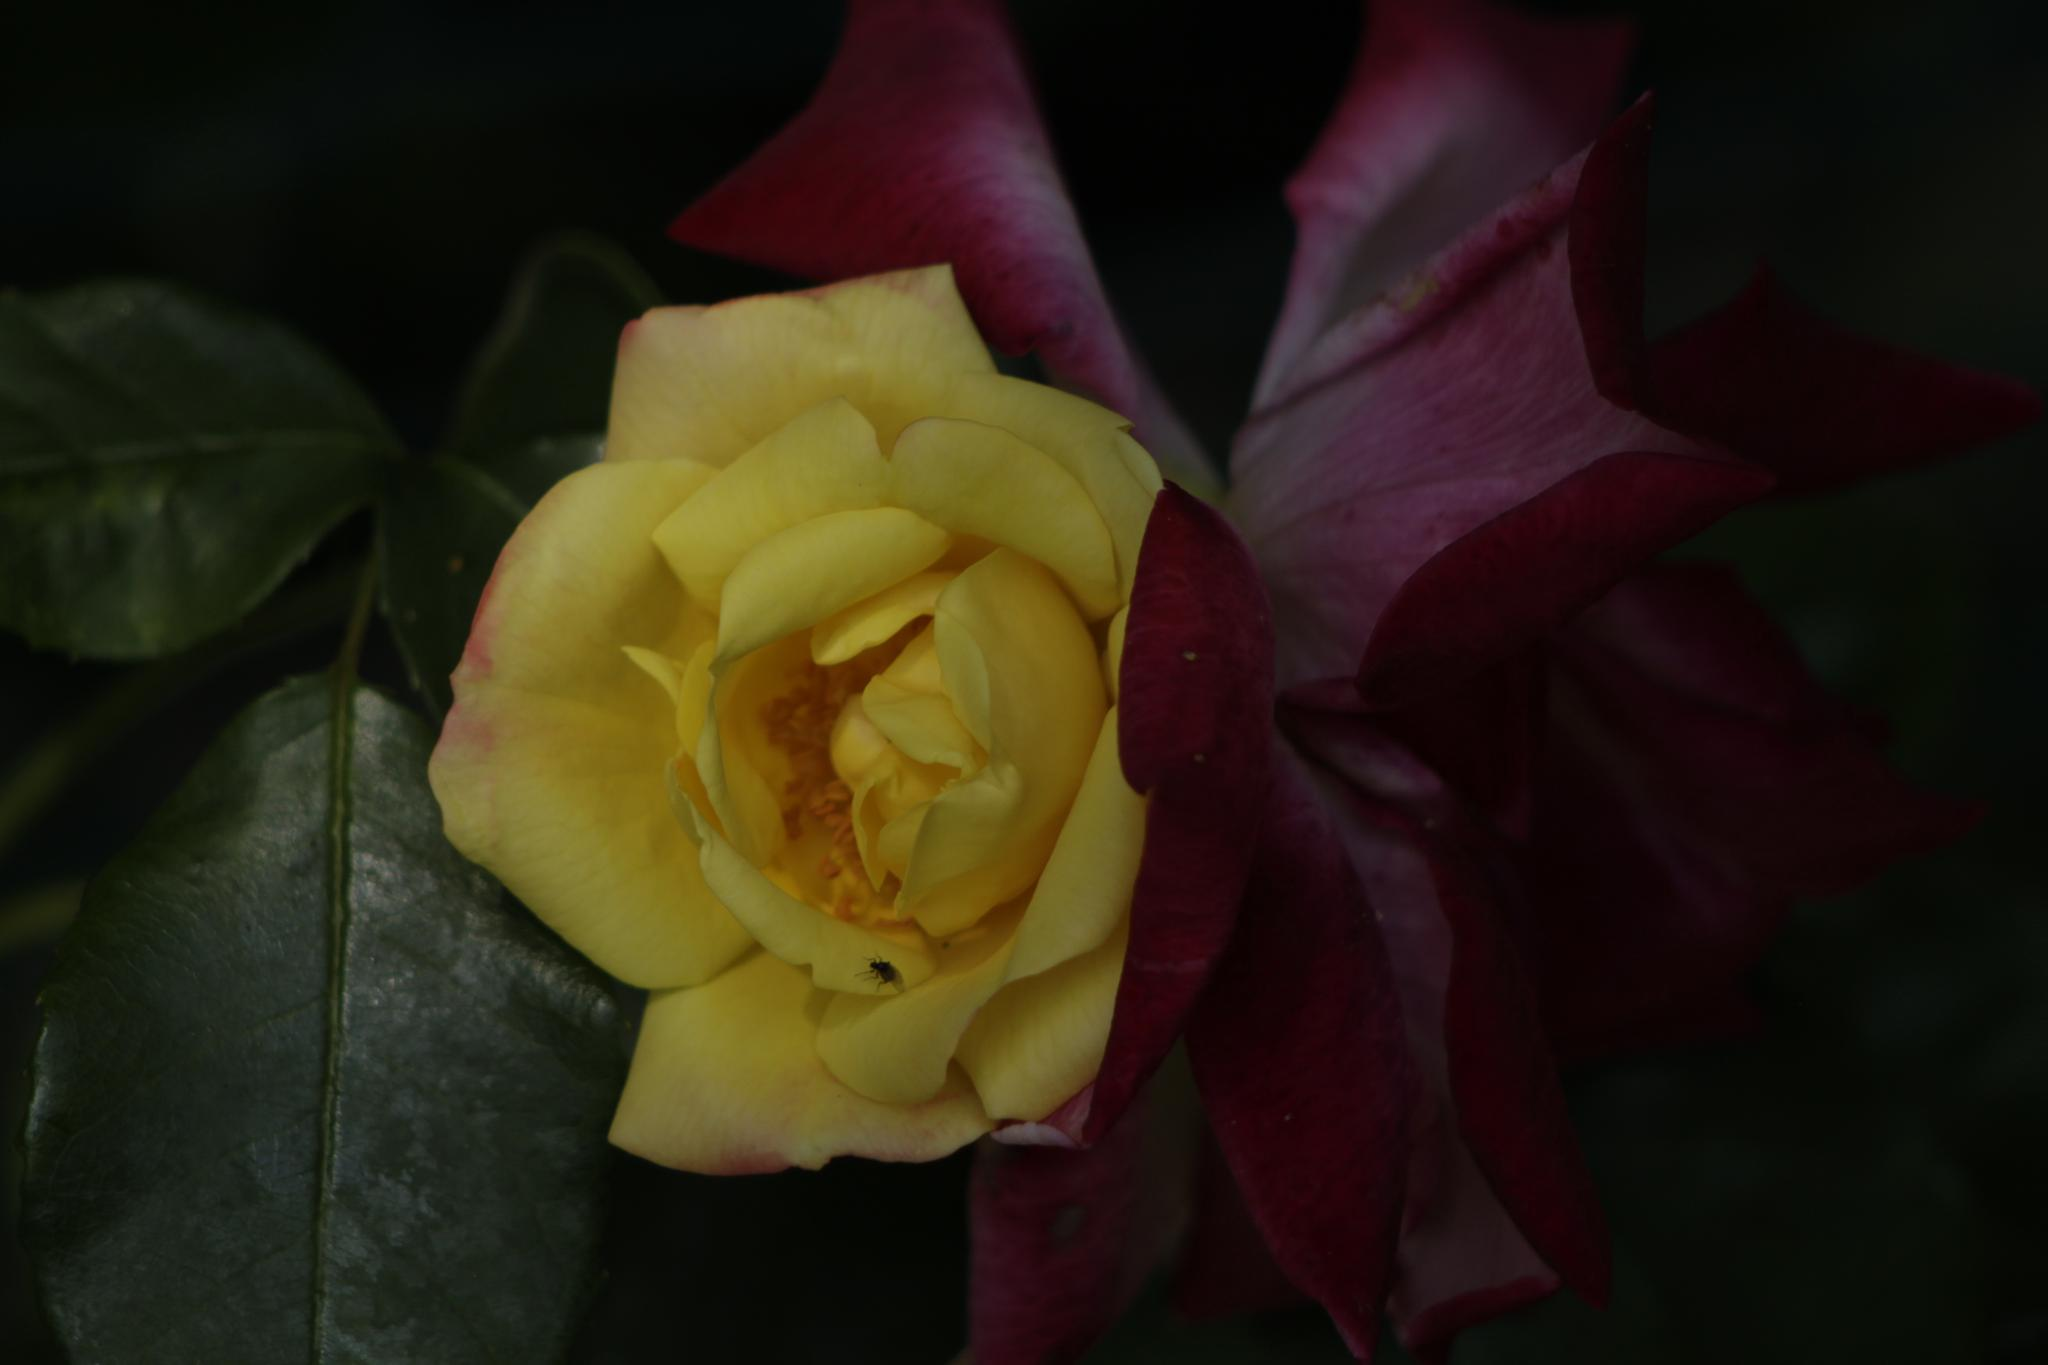 Rose by ashley.cox.1806